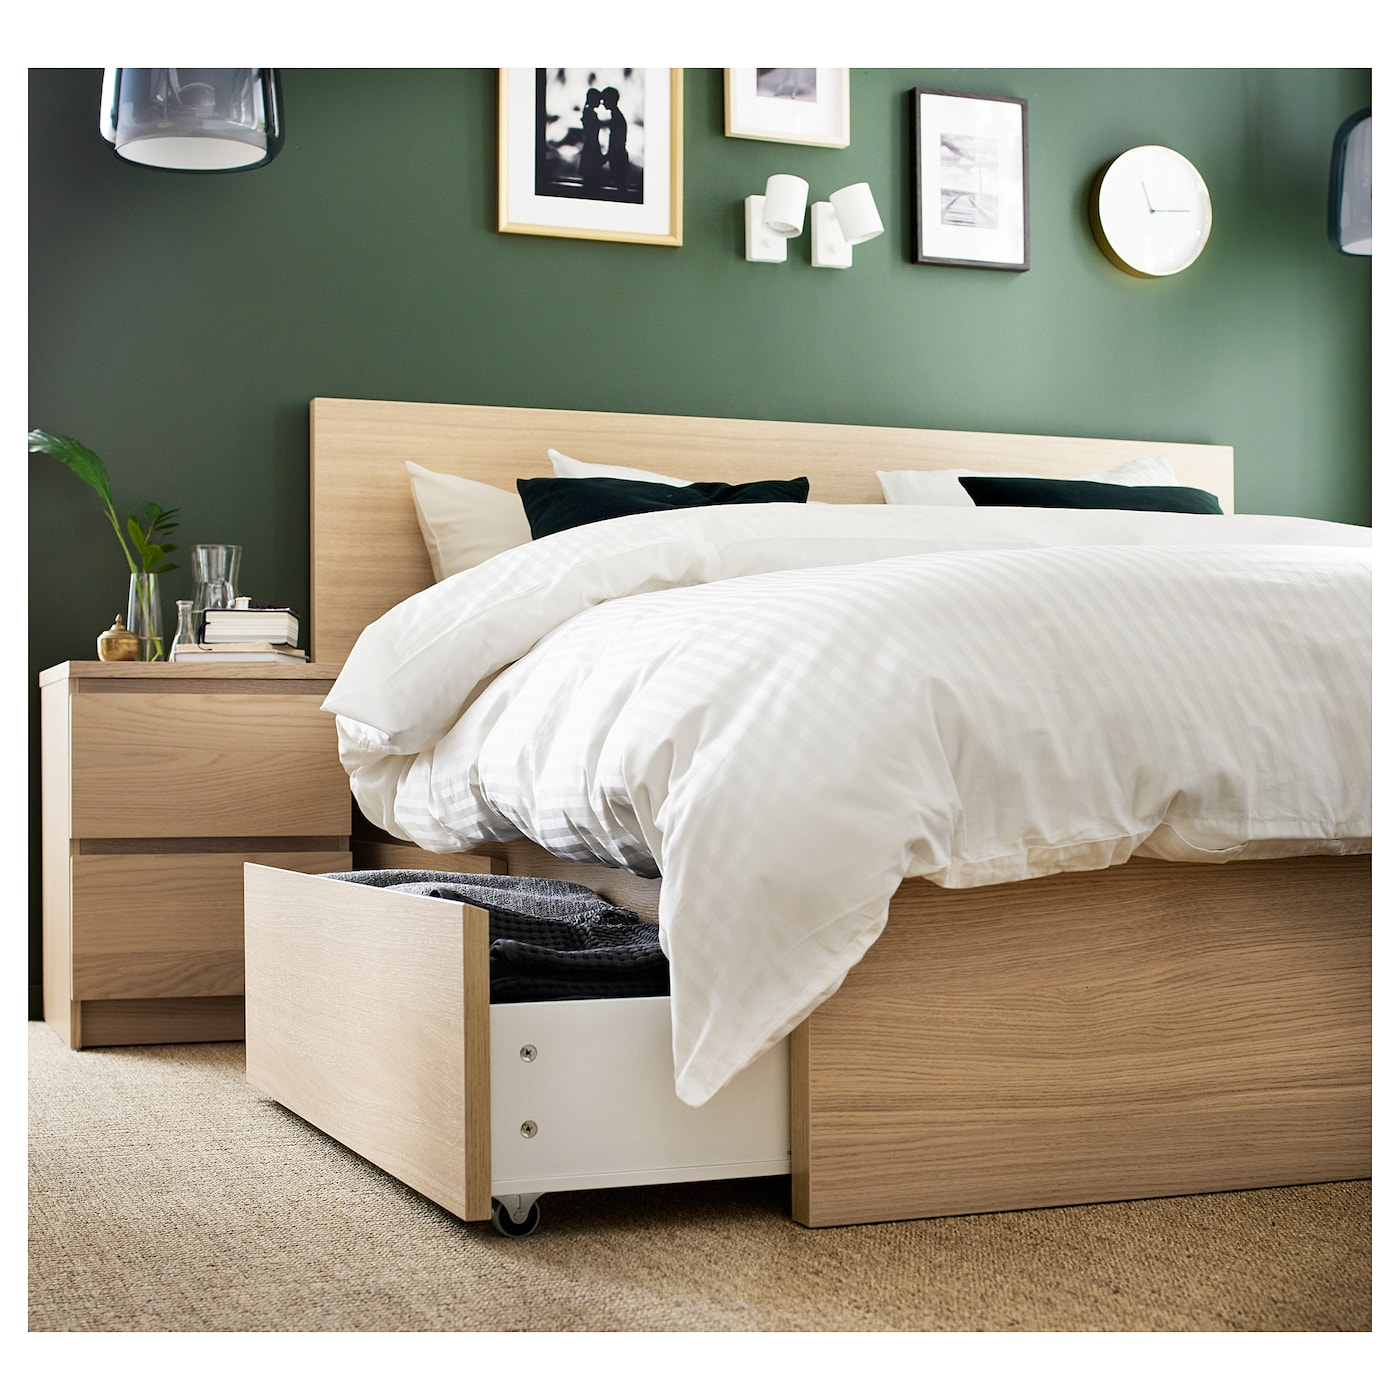 Malm Bed Frame High W 2 Storage Boxes White Stained Oak Veneer Luroy Ikea